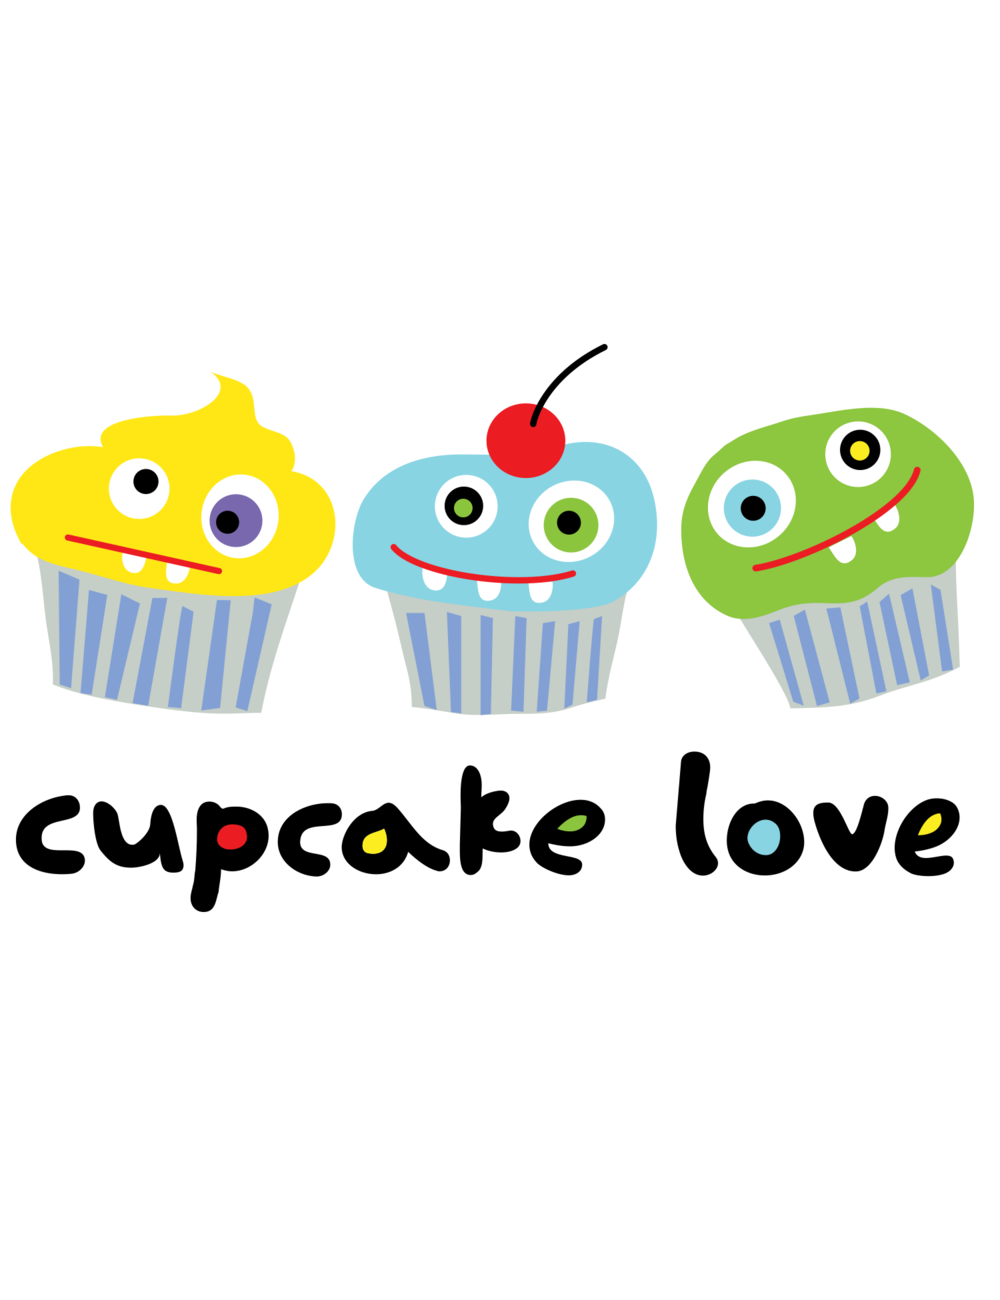 cupcake_love_andi_bird.png